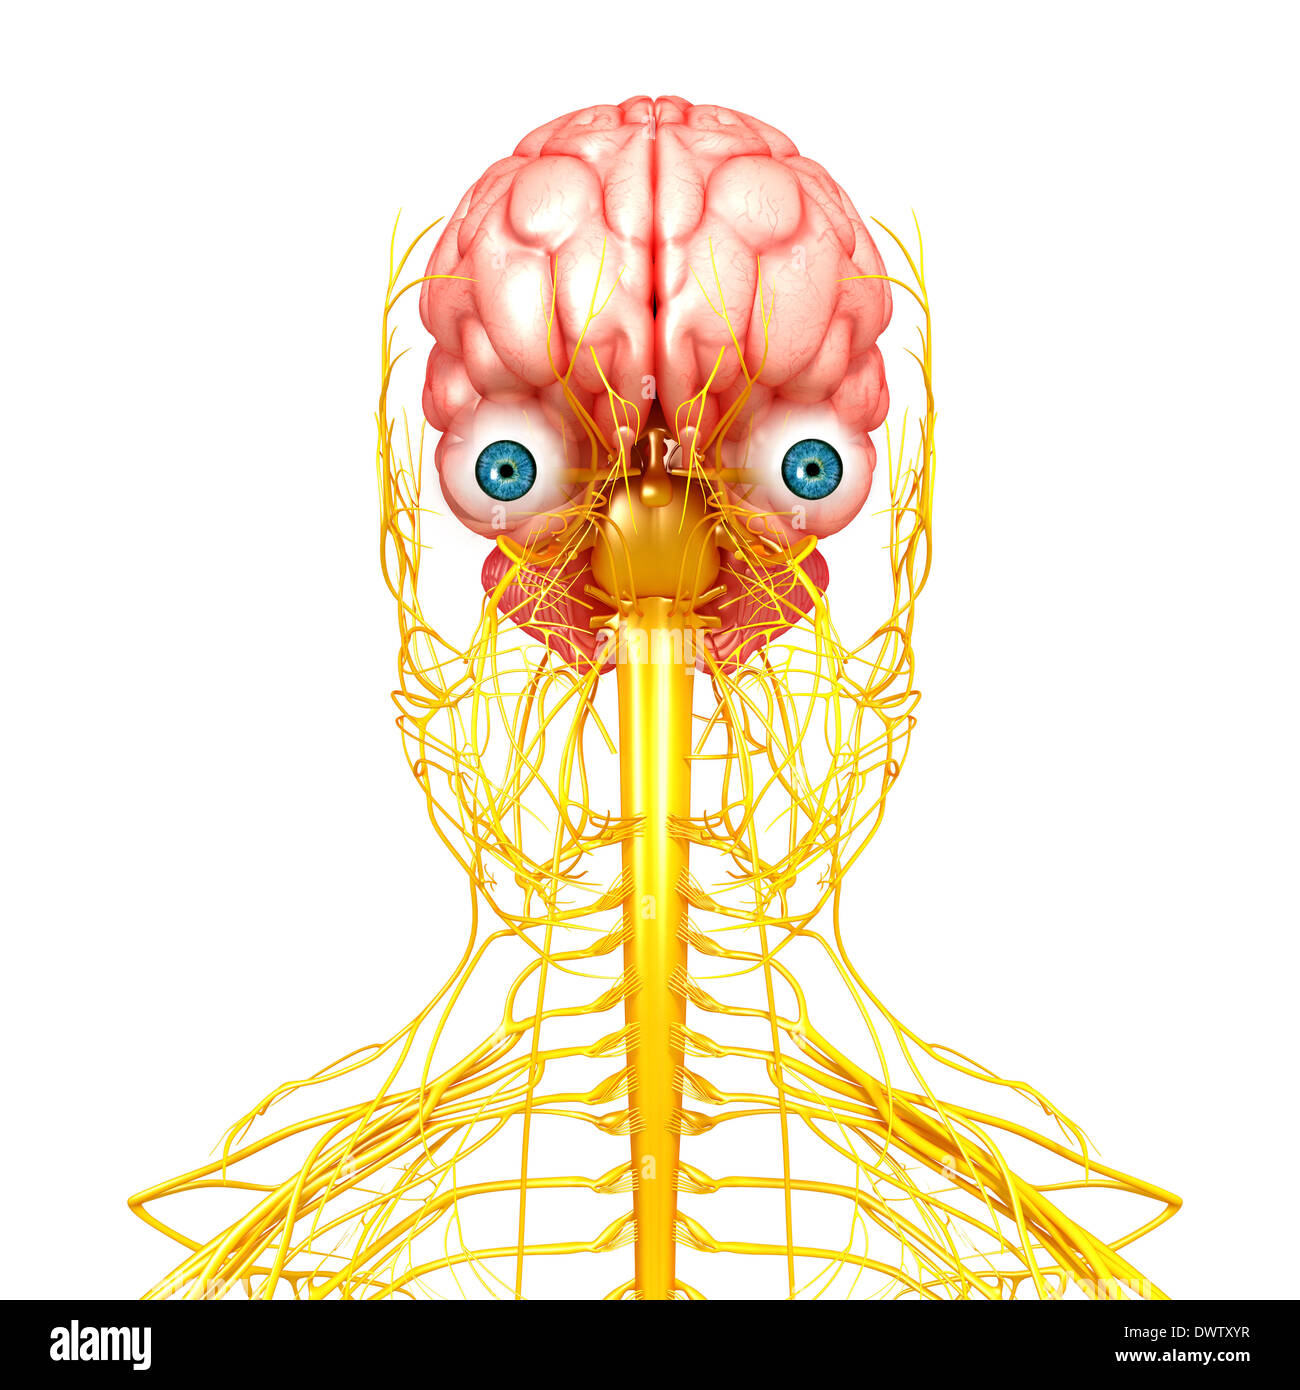 nervous system drawing stock photo 67545515 alamy